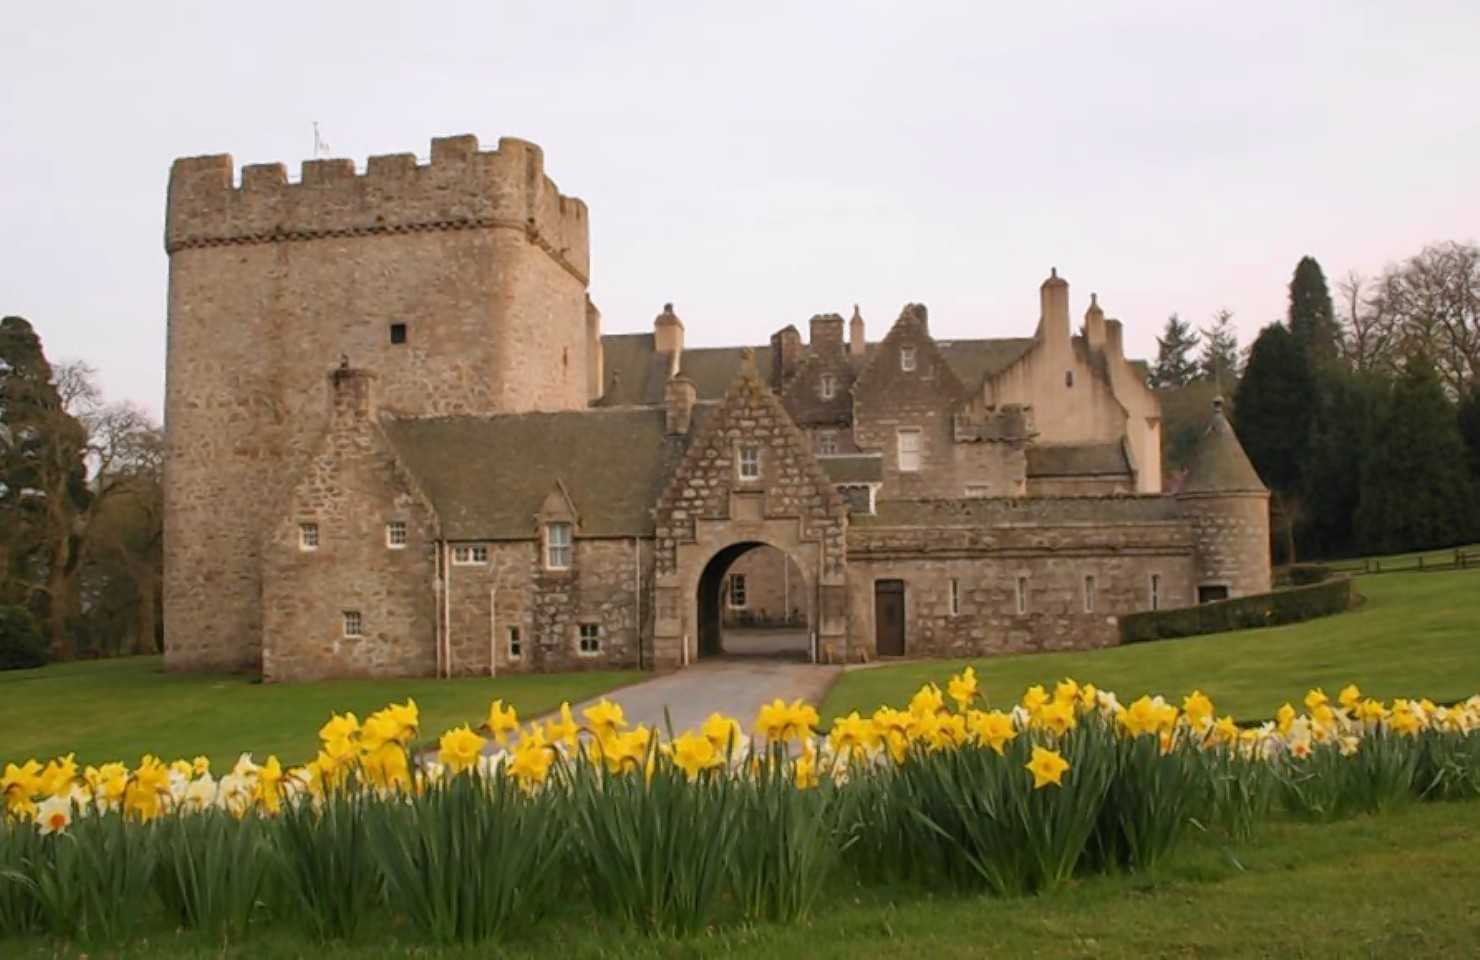 A new art exhibit is to go on display at Drum Castle